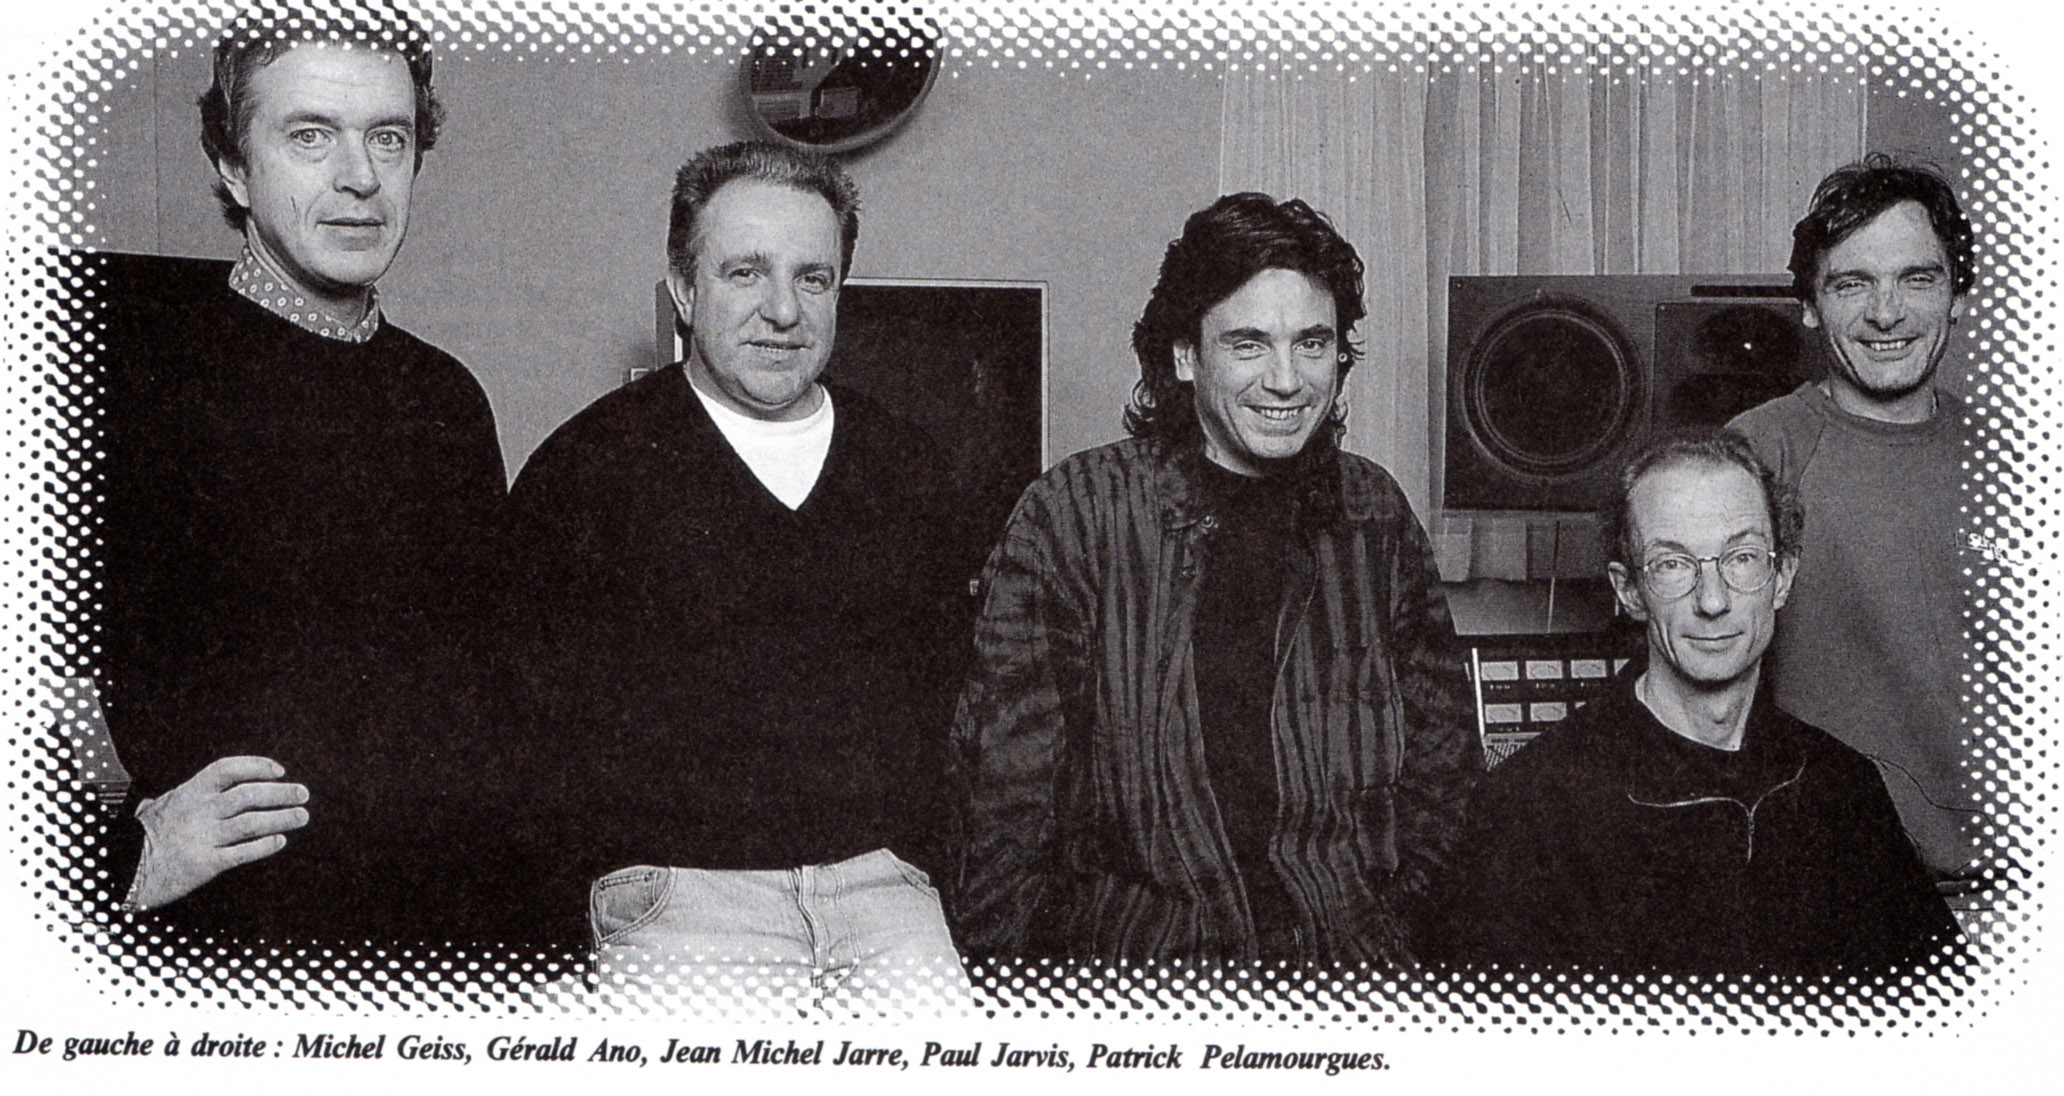 At Jean-Michel's studio left to right Michel Geiss, Gerald Ano (house keeper), JMJ, Paul Jarvis